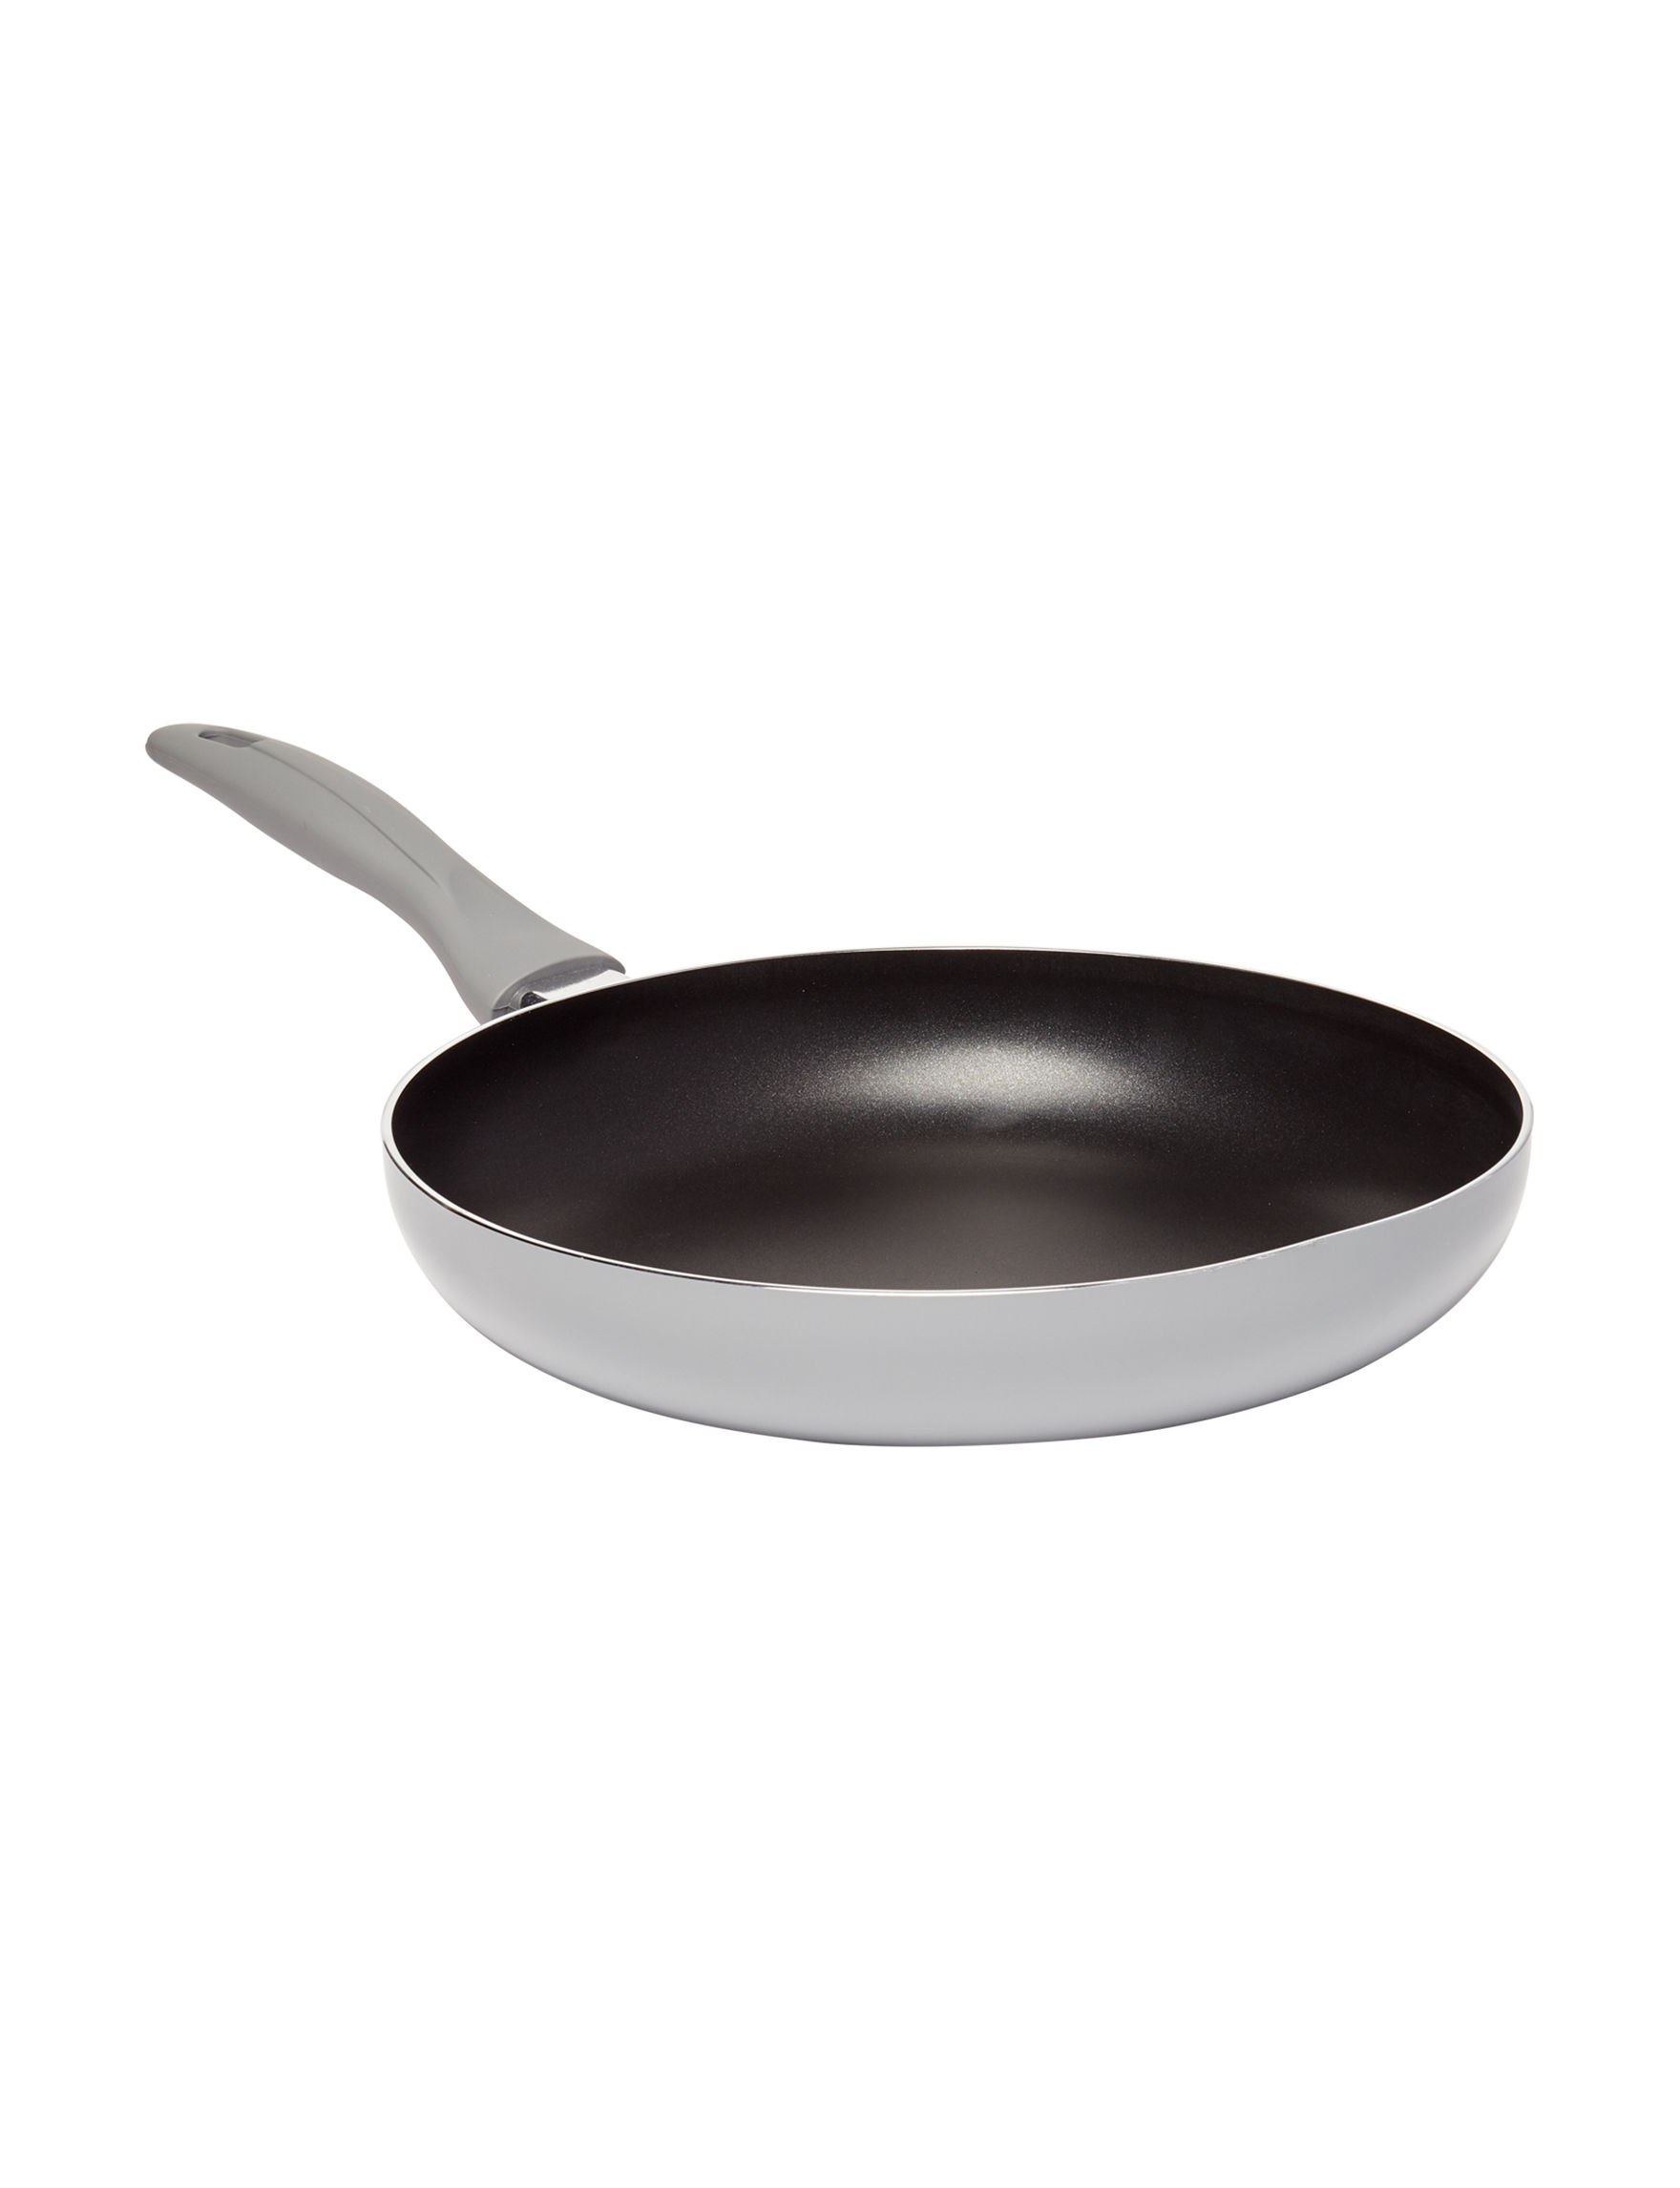 Enchante Grey Frying Pans & Skillets Cookware